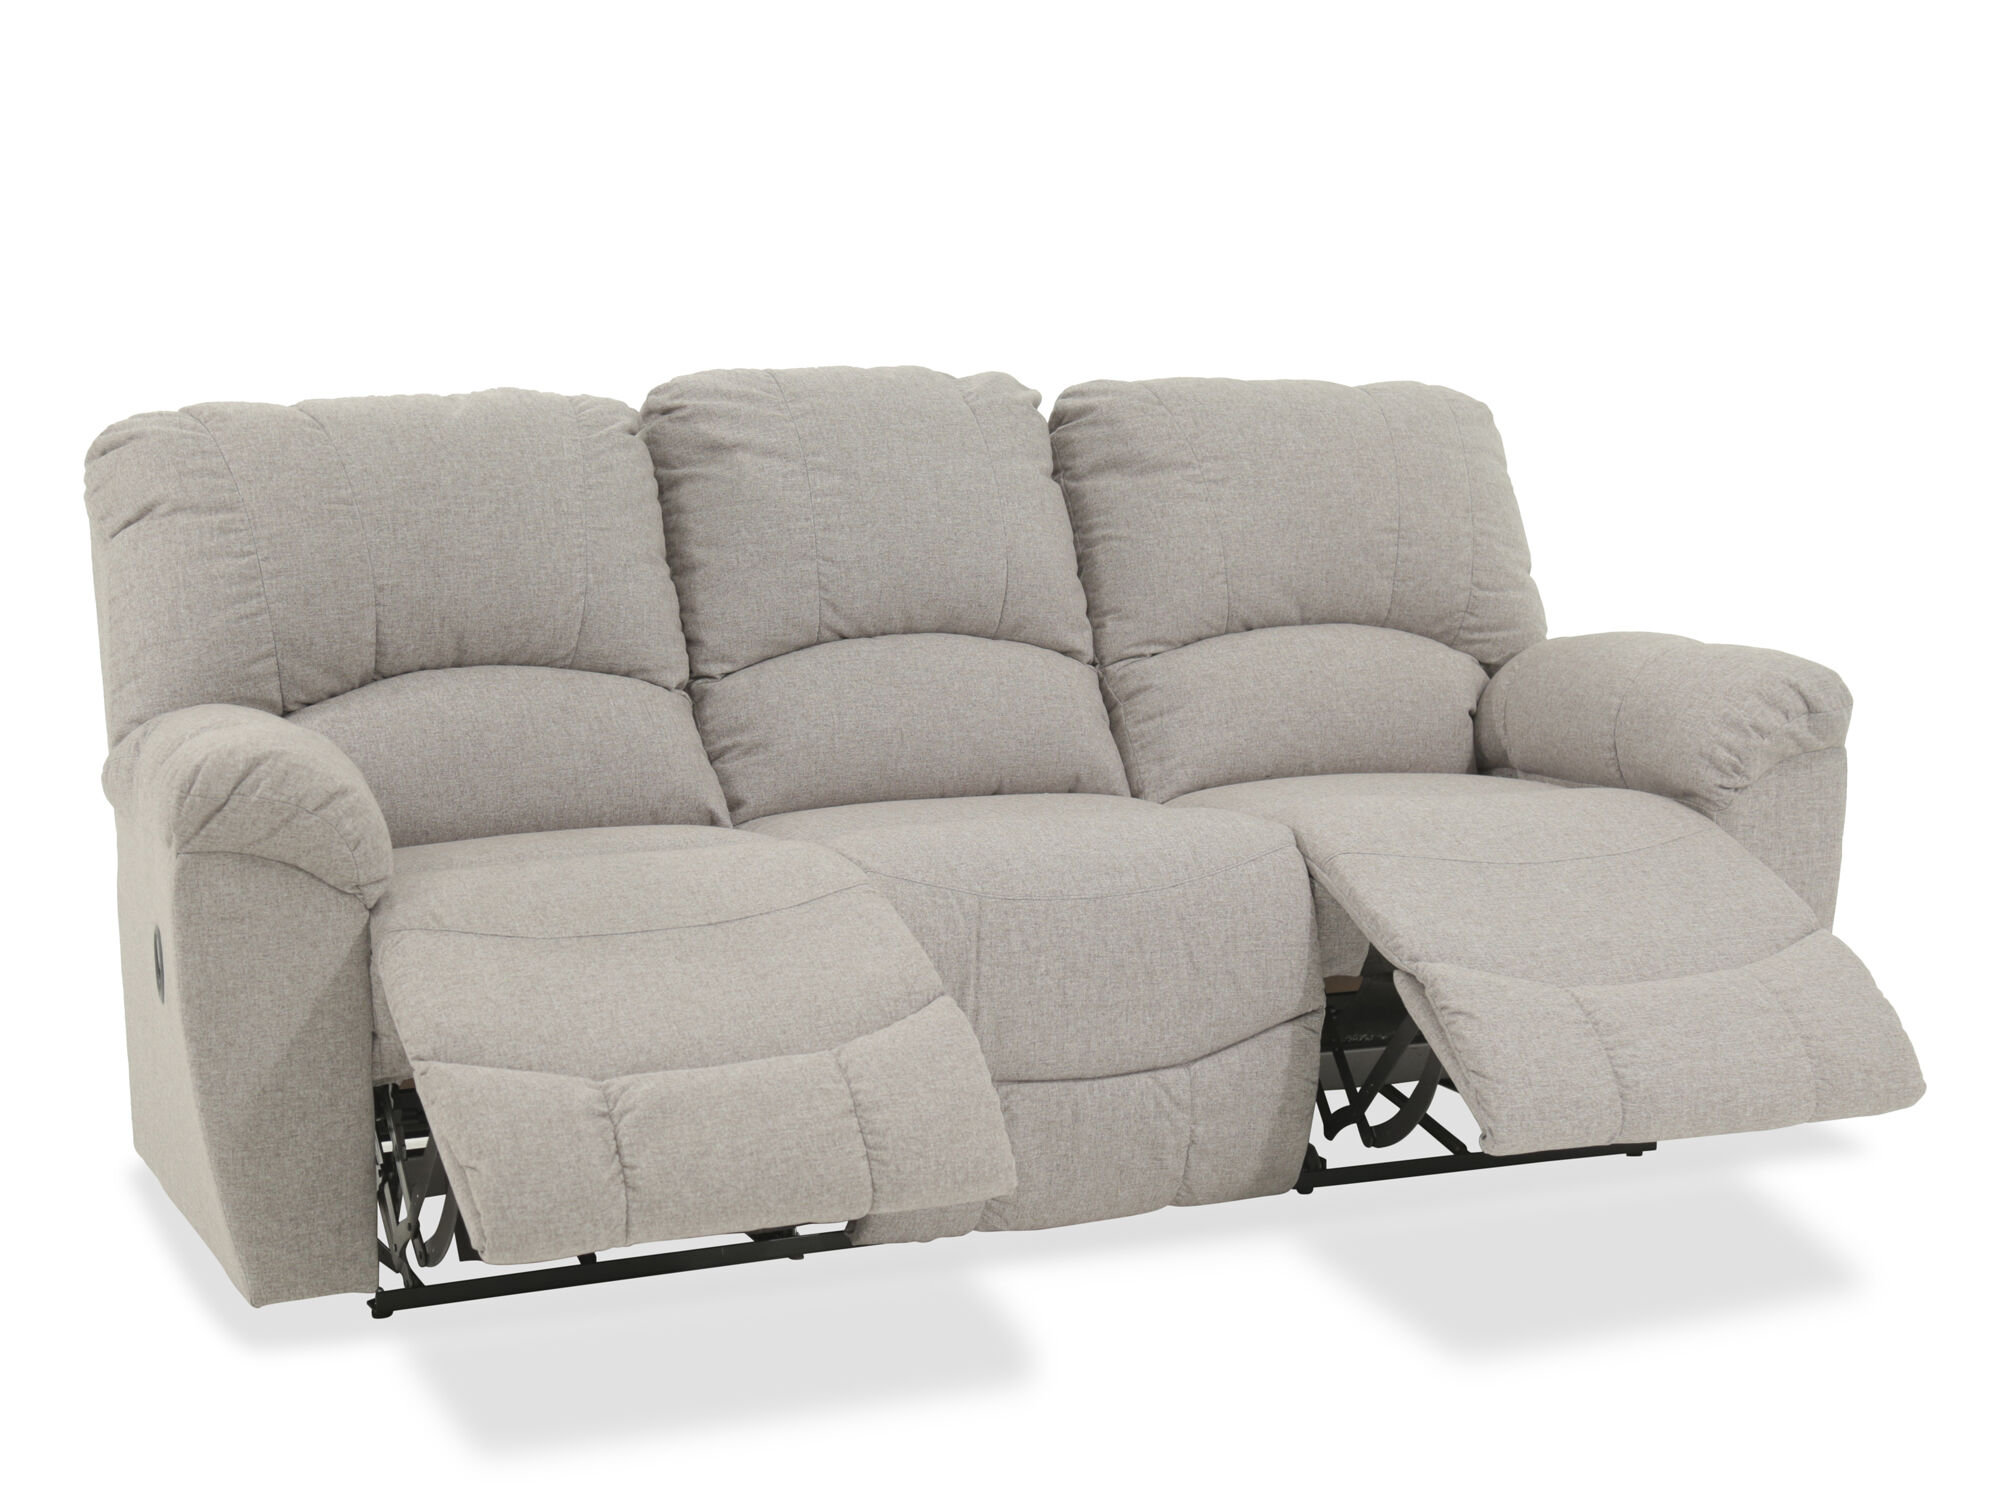 Marvelous Casual 87u0026quot; Reclining Sofa In Gray